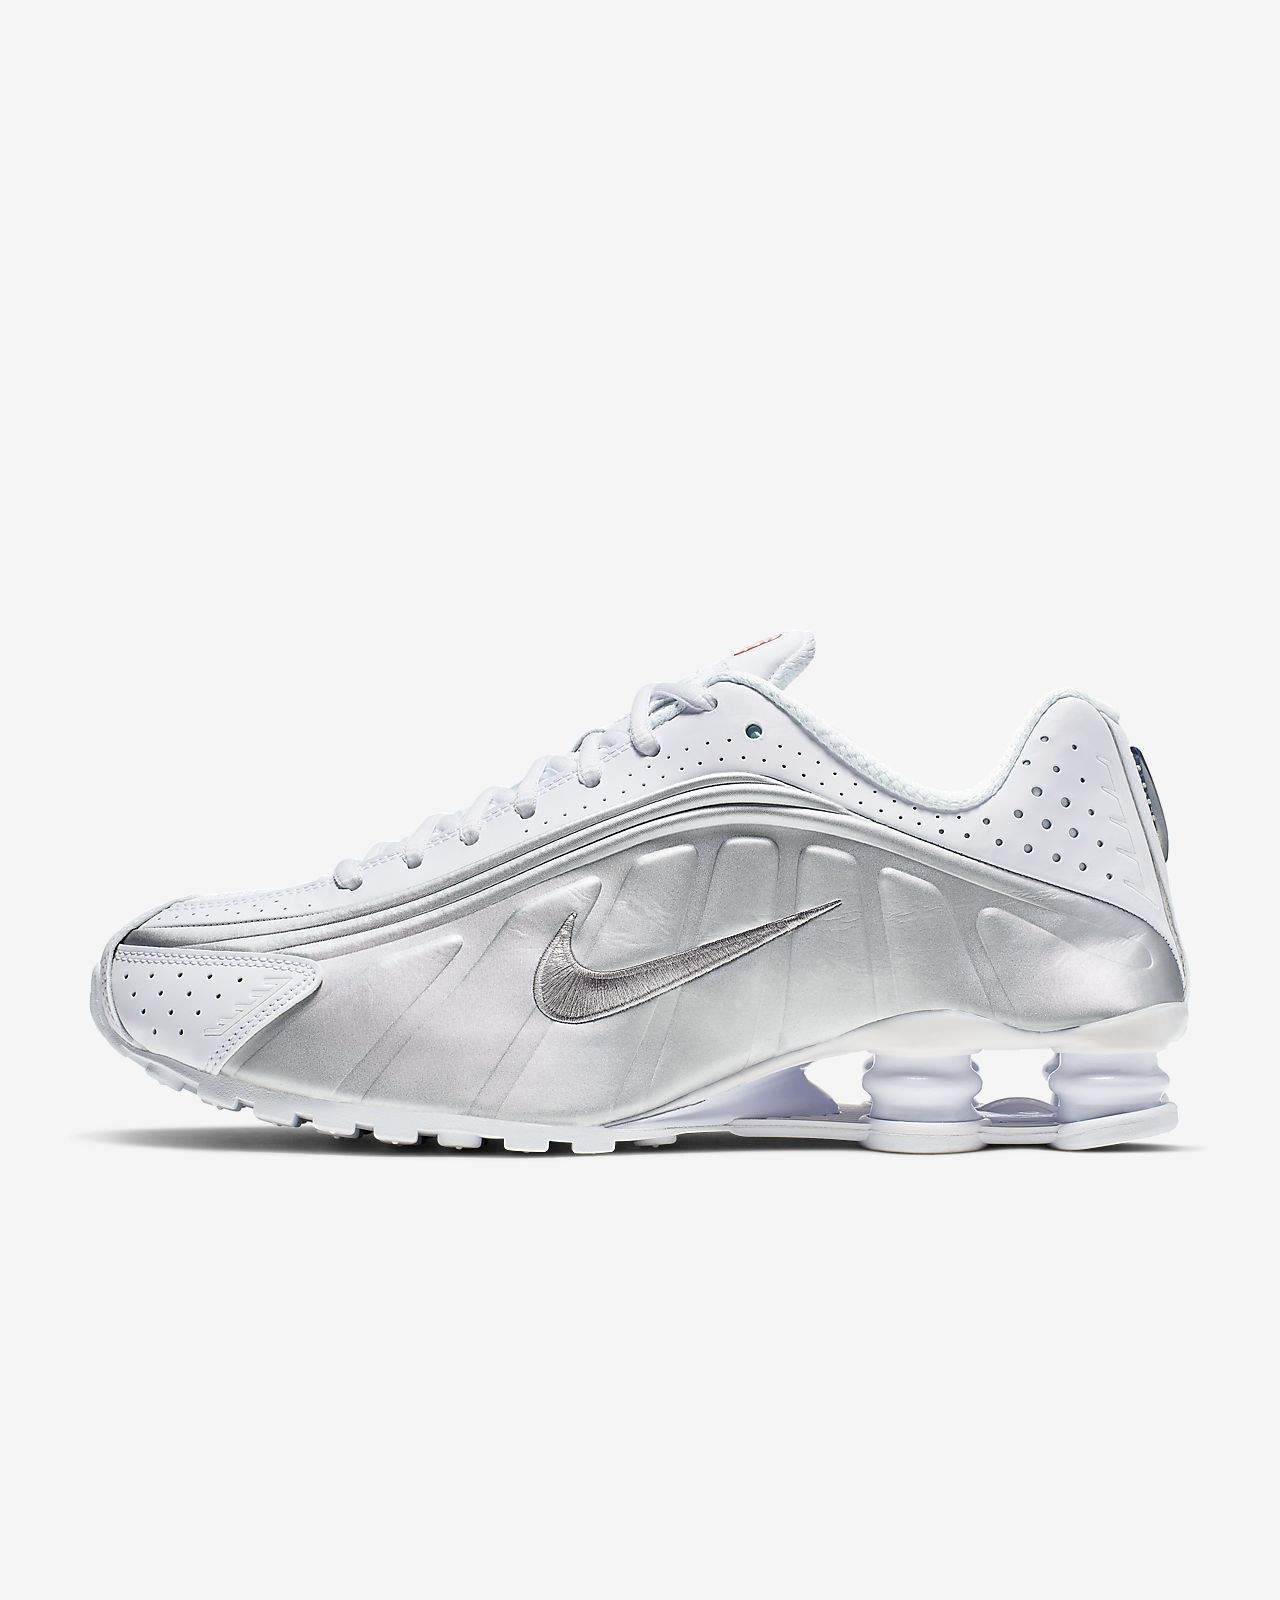 huge discount 45834 8beb4 ... Nike Shox R4 Men s Shoe